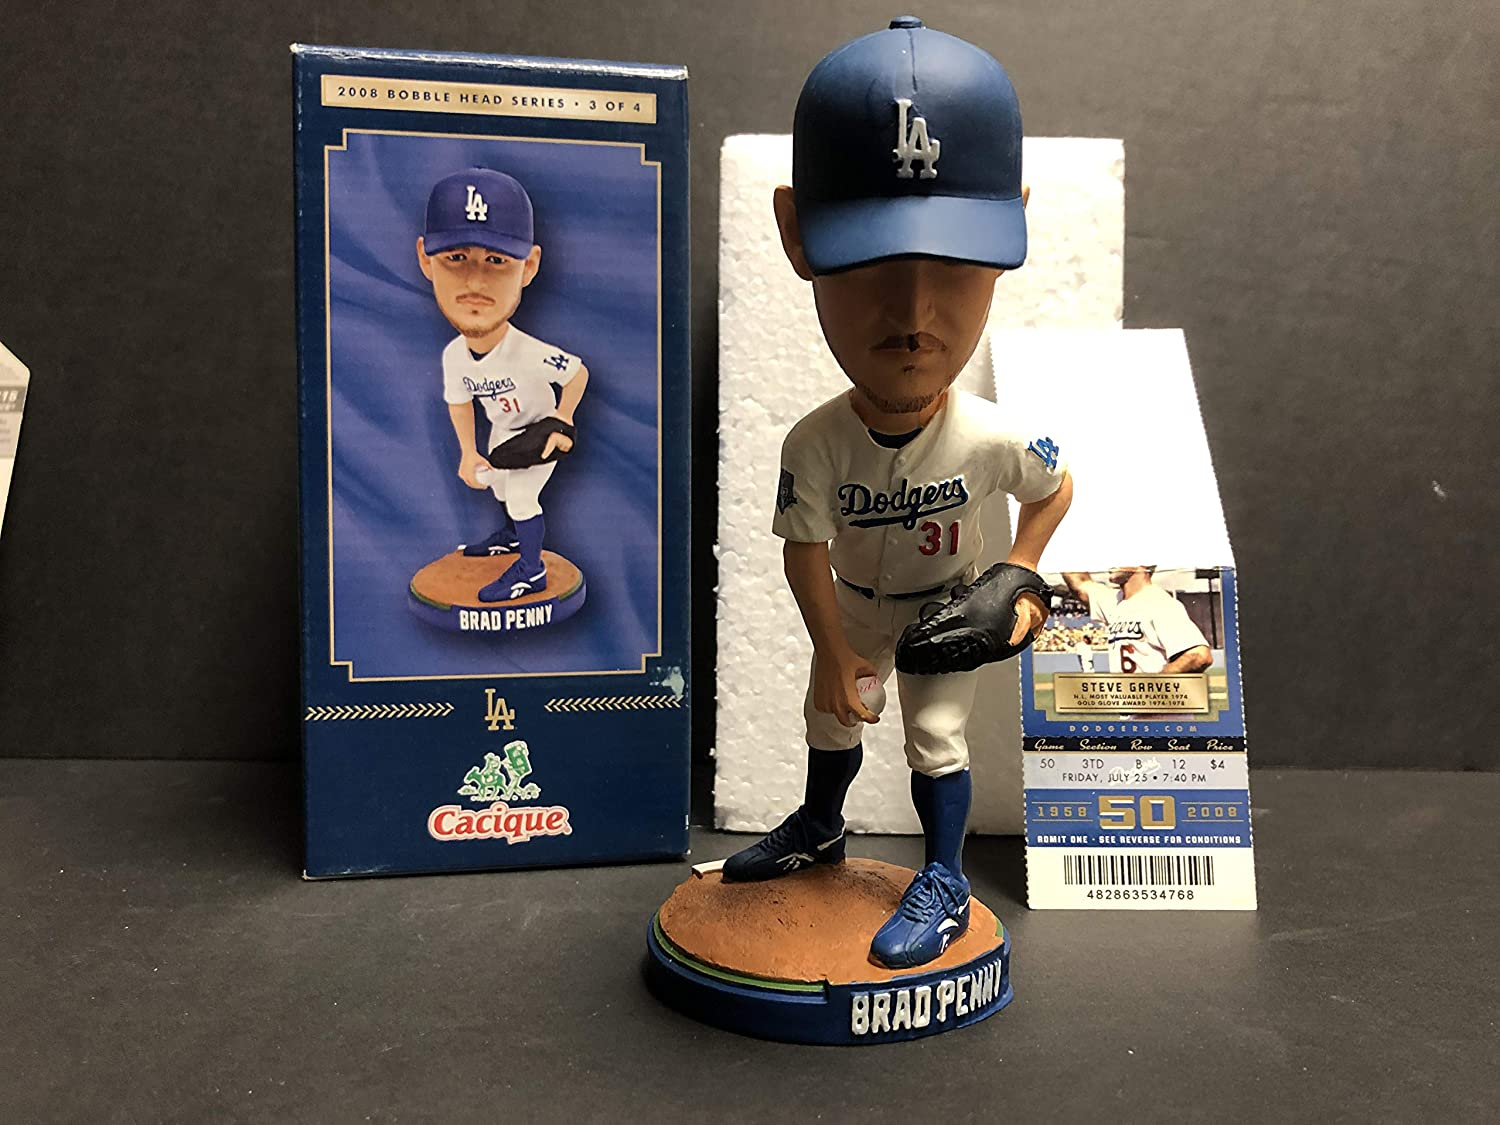 Brad Penny 2008 Los Angeles Dodgers Bobblehead SGA with HARD GAME TICKET